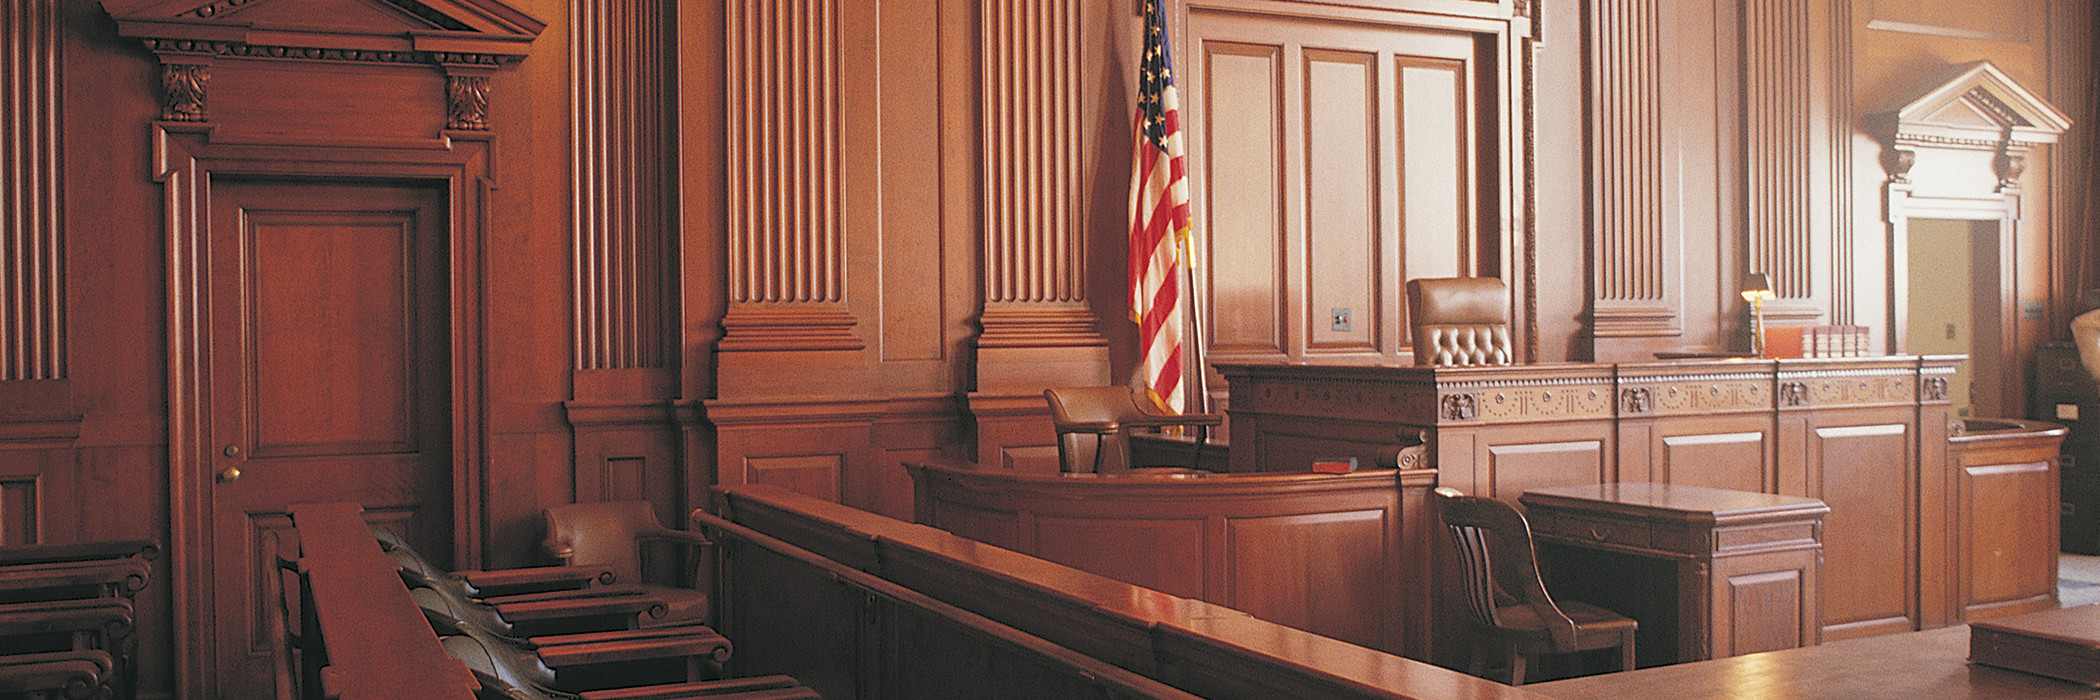 Empty wood-paneled courtroom with American flag